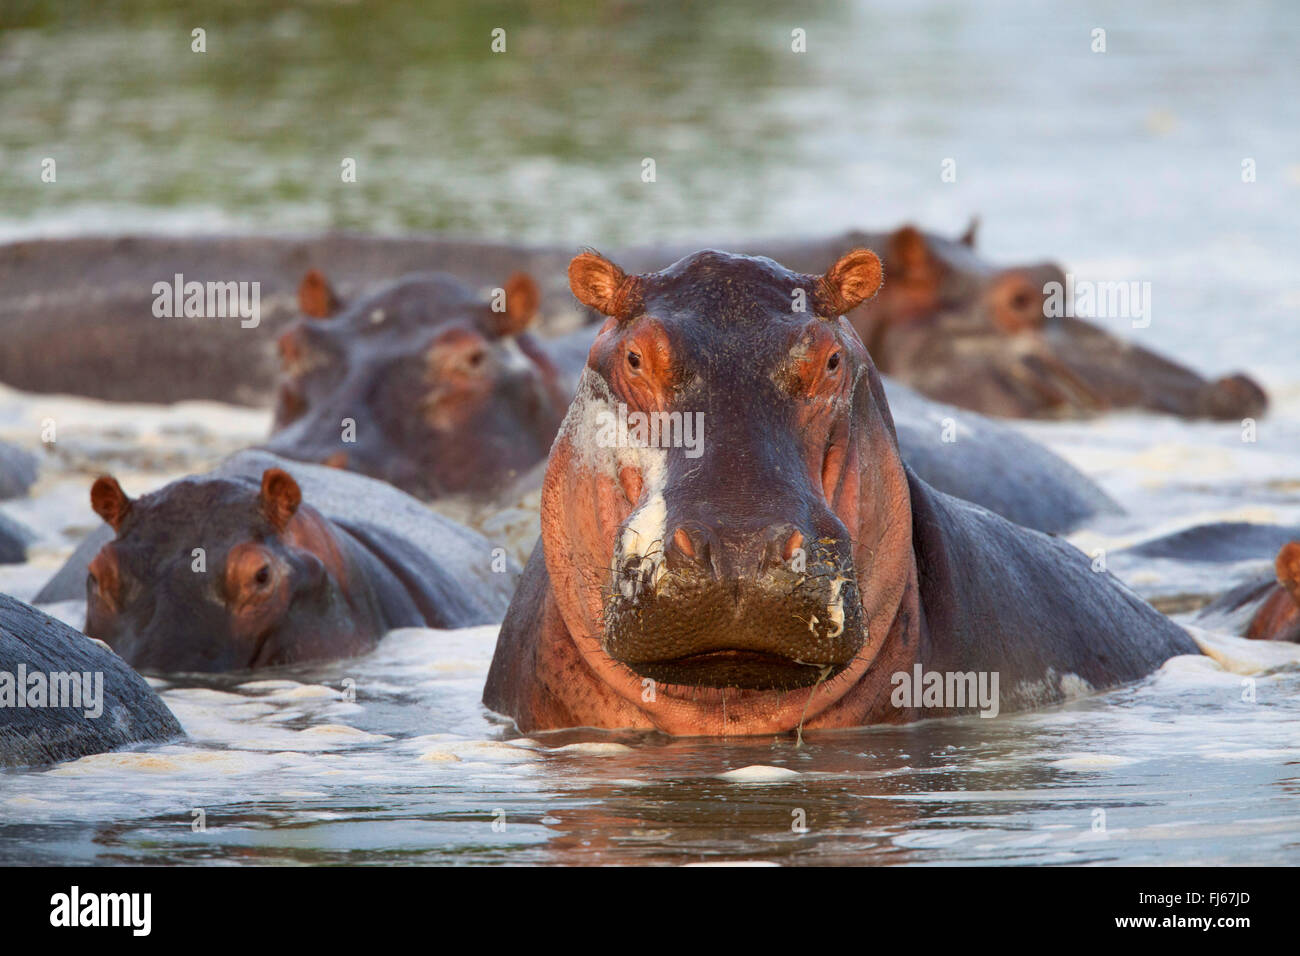 hippopotamus, hippo, Common hippopotamus (Hippopotamus amphibius), herd in a river, South Africa - Stock Image